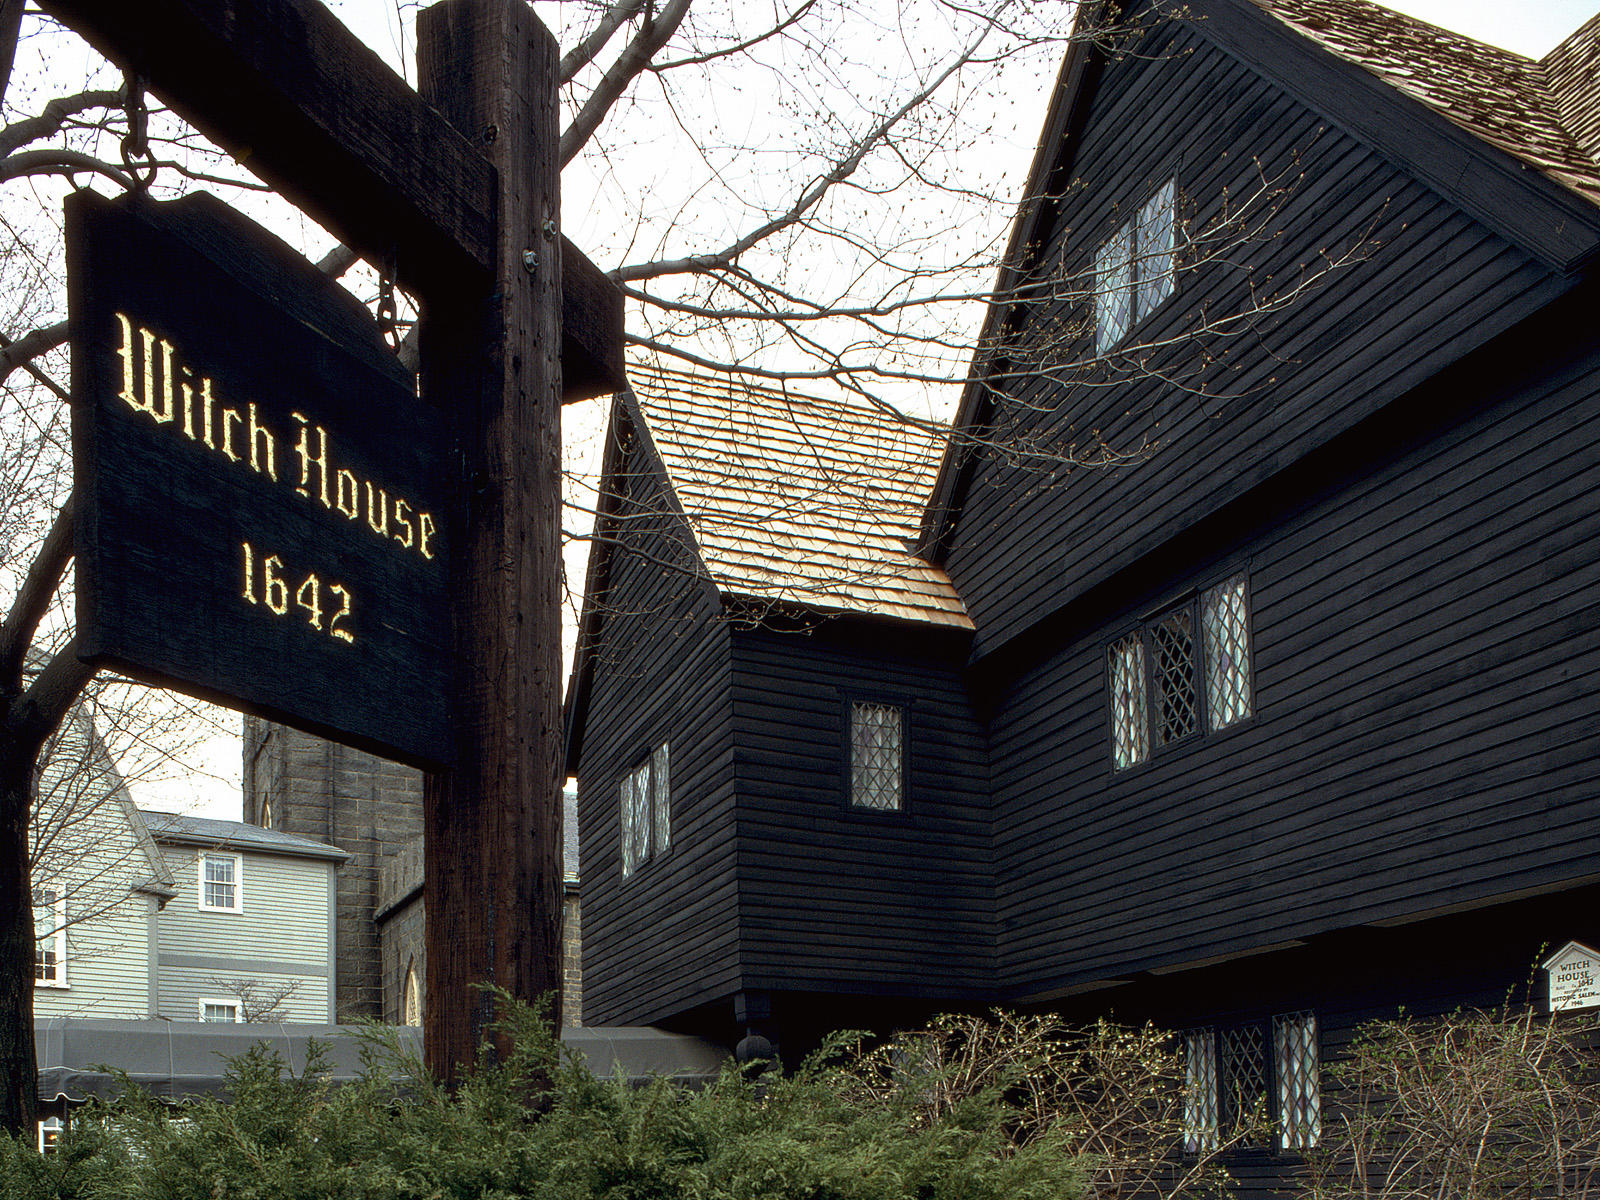 http://upload.wikimedia.org/wikipedia/commons/1/1c/Salem_Witch_House_II.jpg